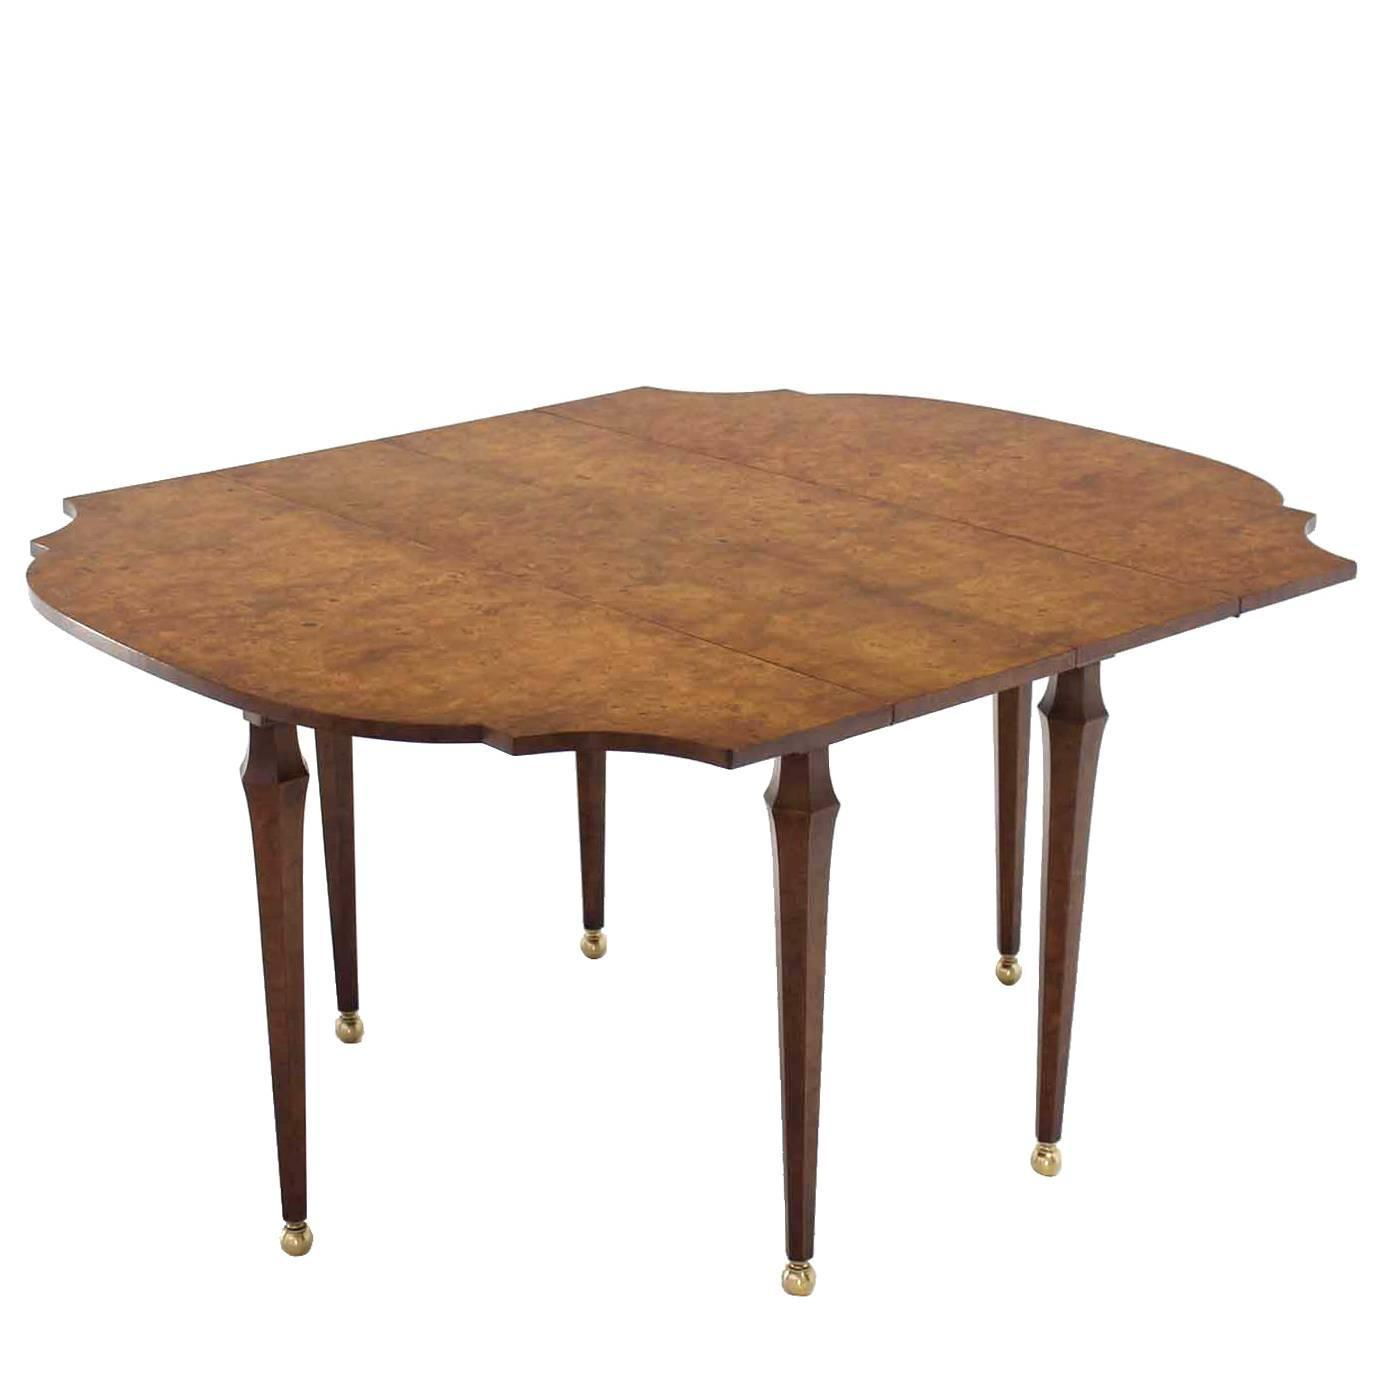 Burl wood drop leaf dining table on brass balls feet for for 9 foot dining room table